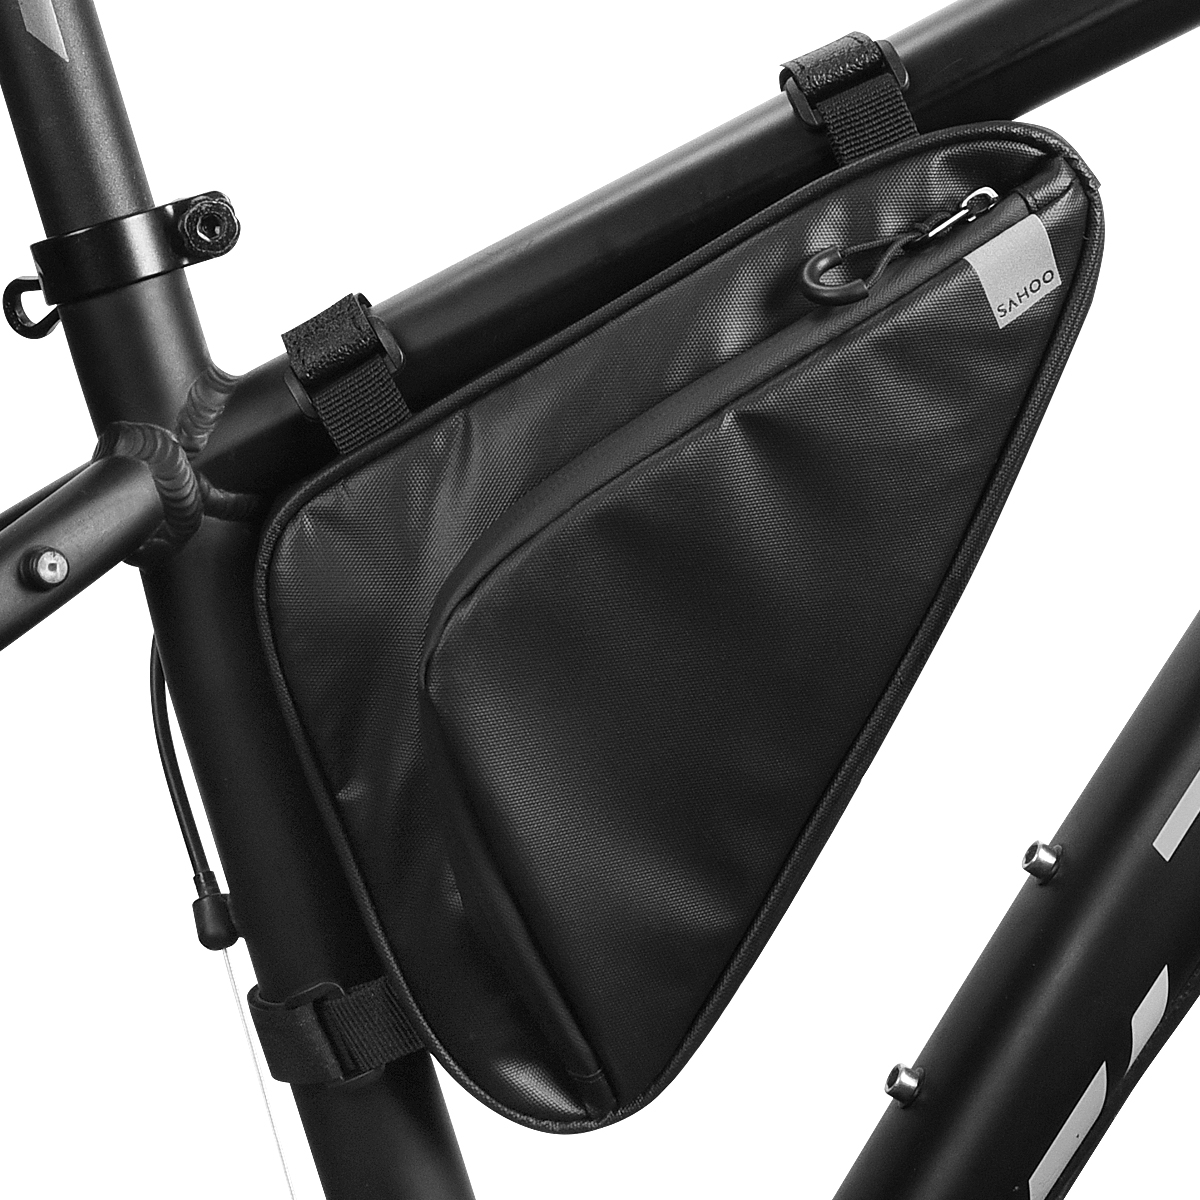 High Capacity Top//Seat Tube Bag for Bike Bicycle Cycling Storage Pouch Oxford